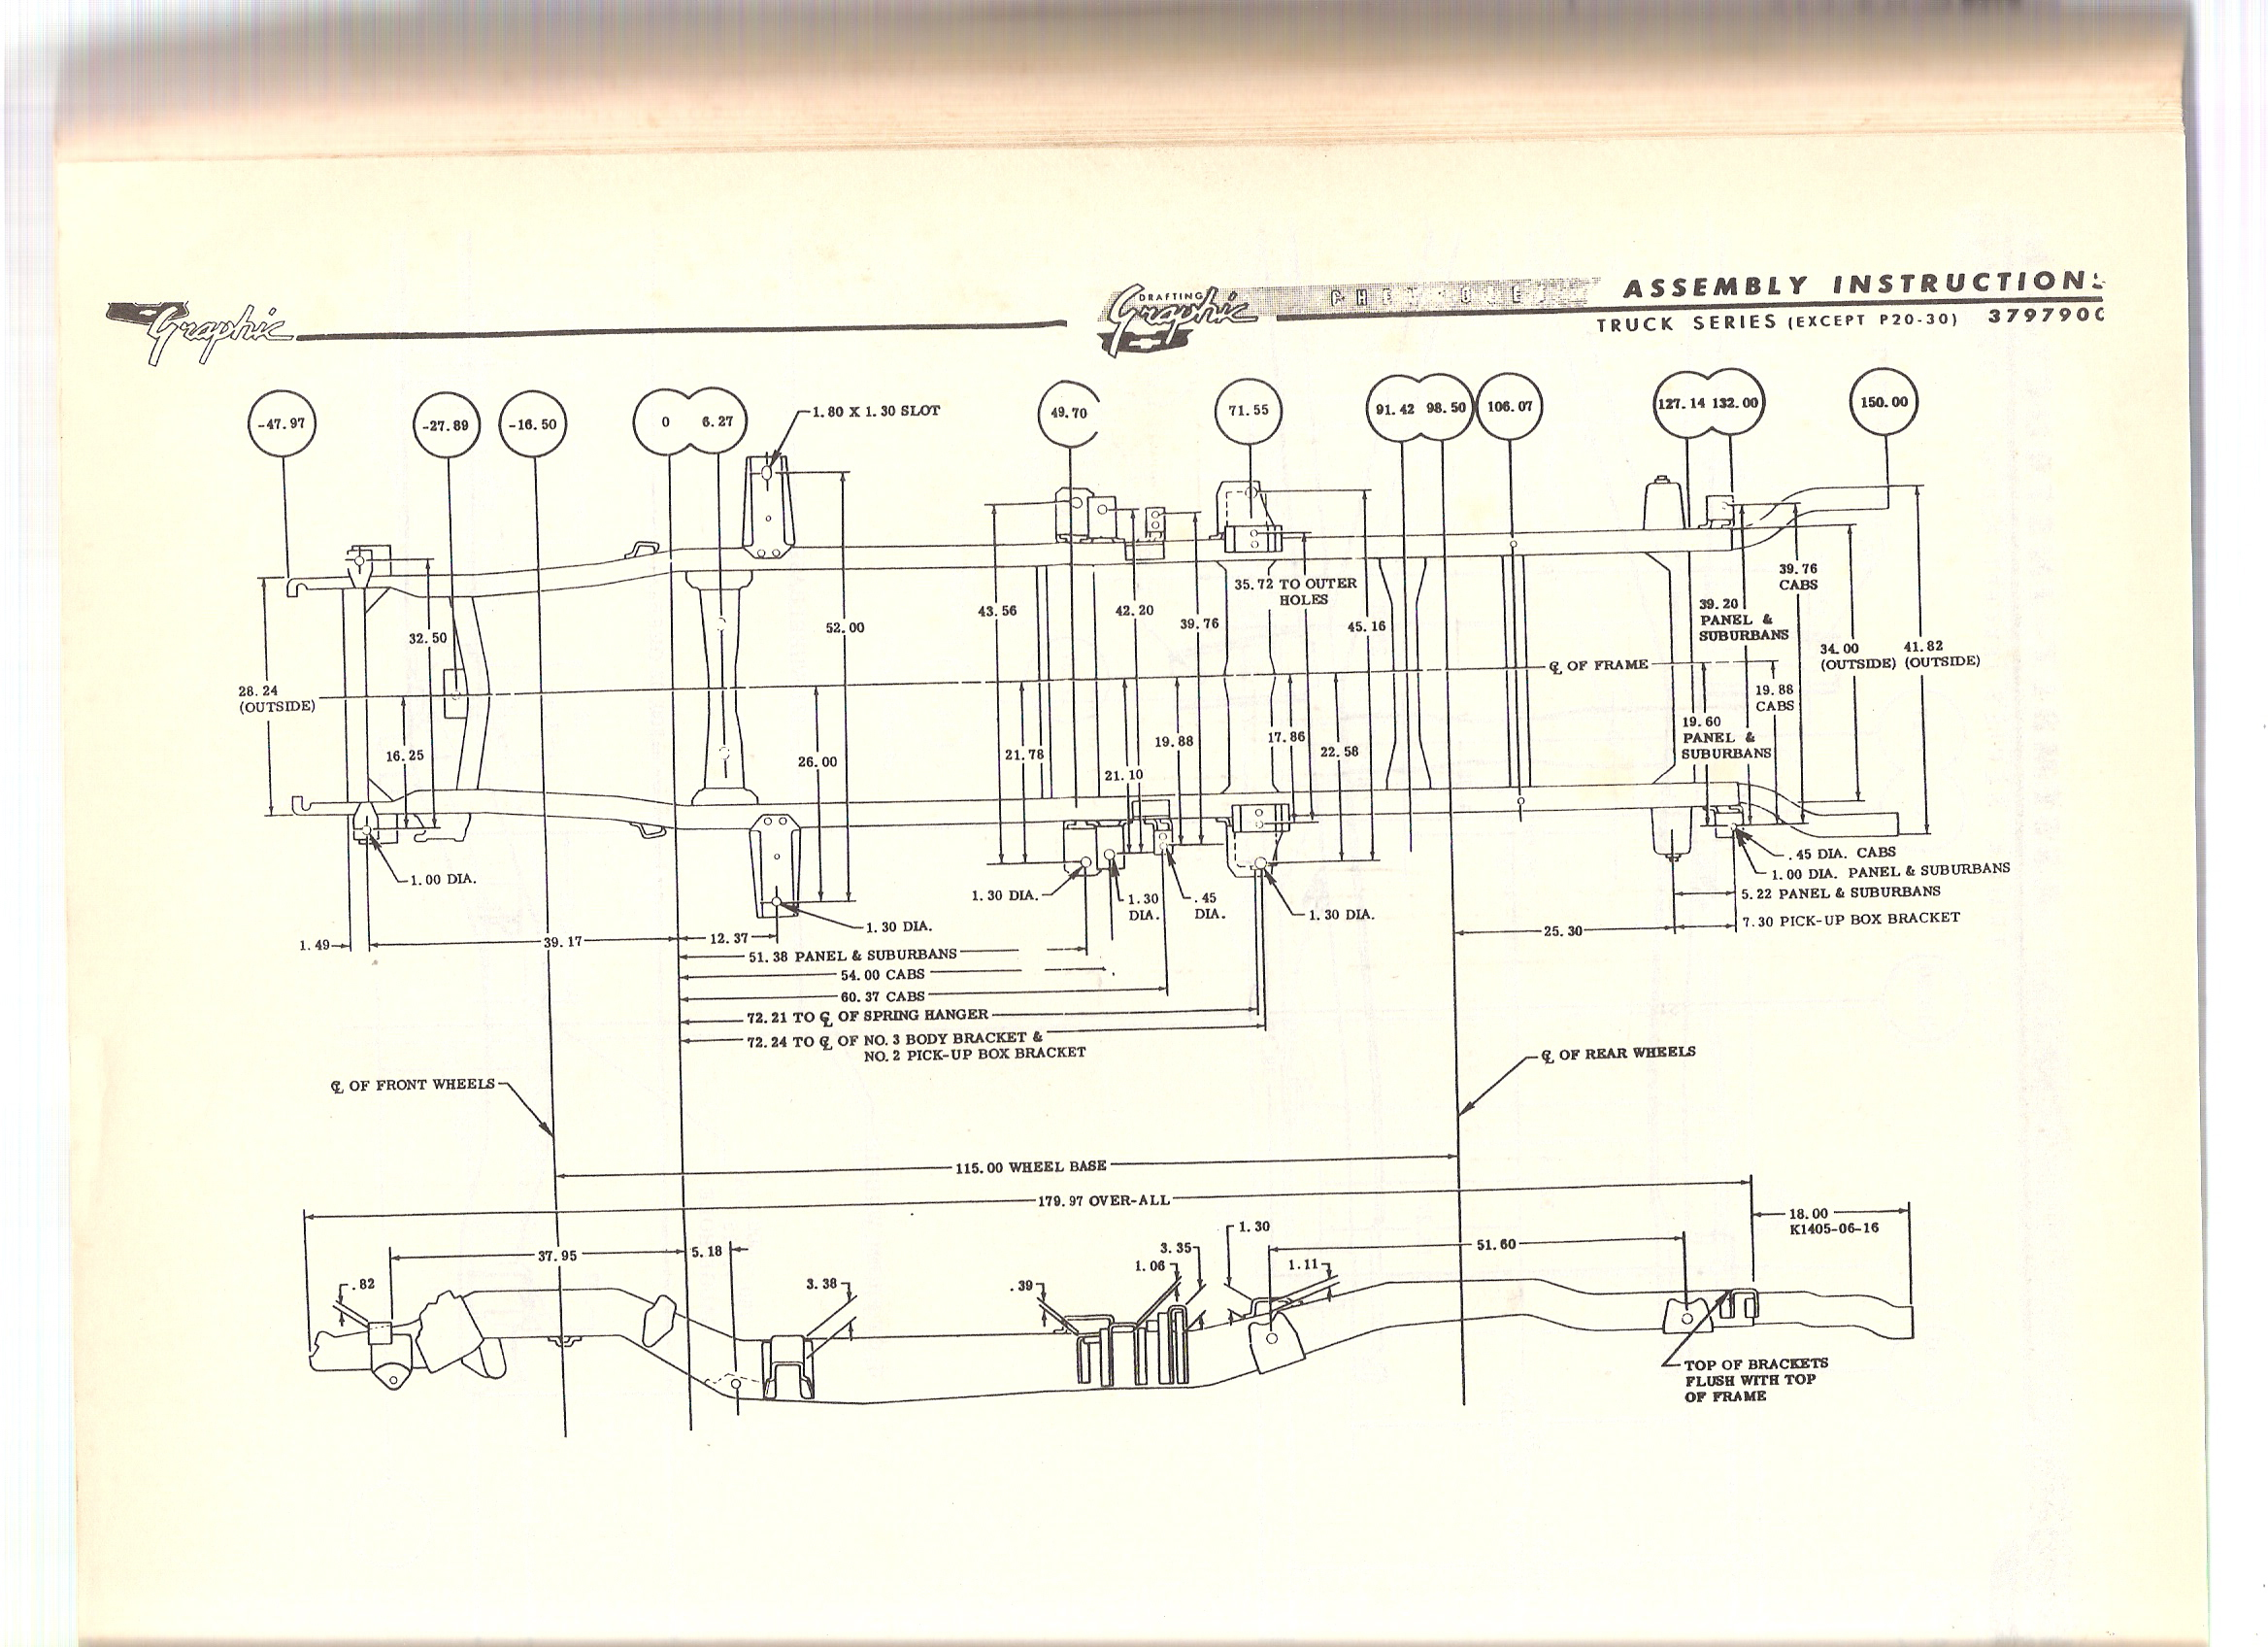 1963 1966 GMC Chevy Frame Schematic1?resize\\\\\=665%2C483 1978 gmc truck electrical wiring diagrams gandul 45 77 79 119 gmc truck electrical wiring diagrams at bayanpartner.co